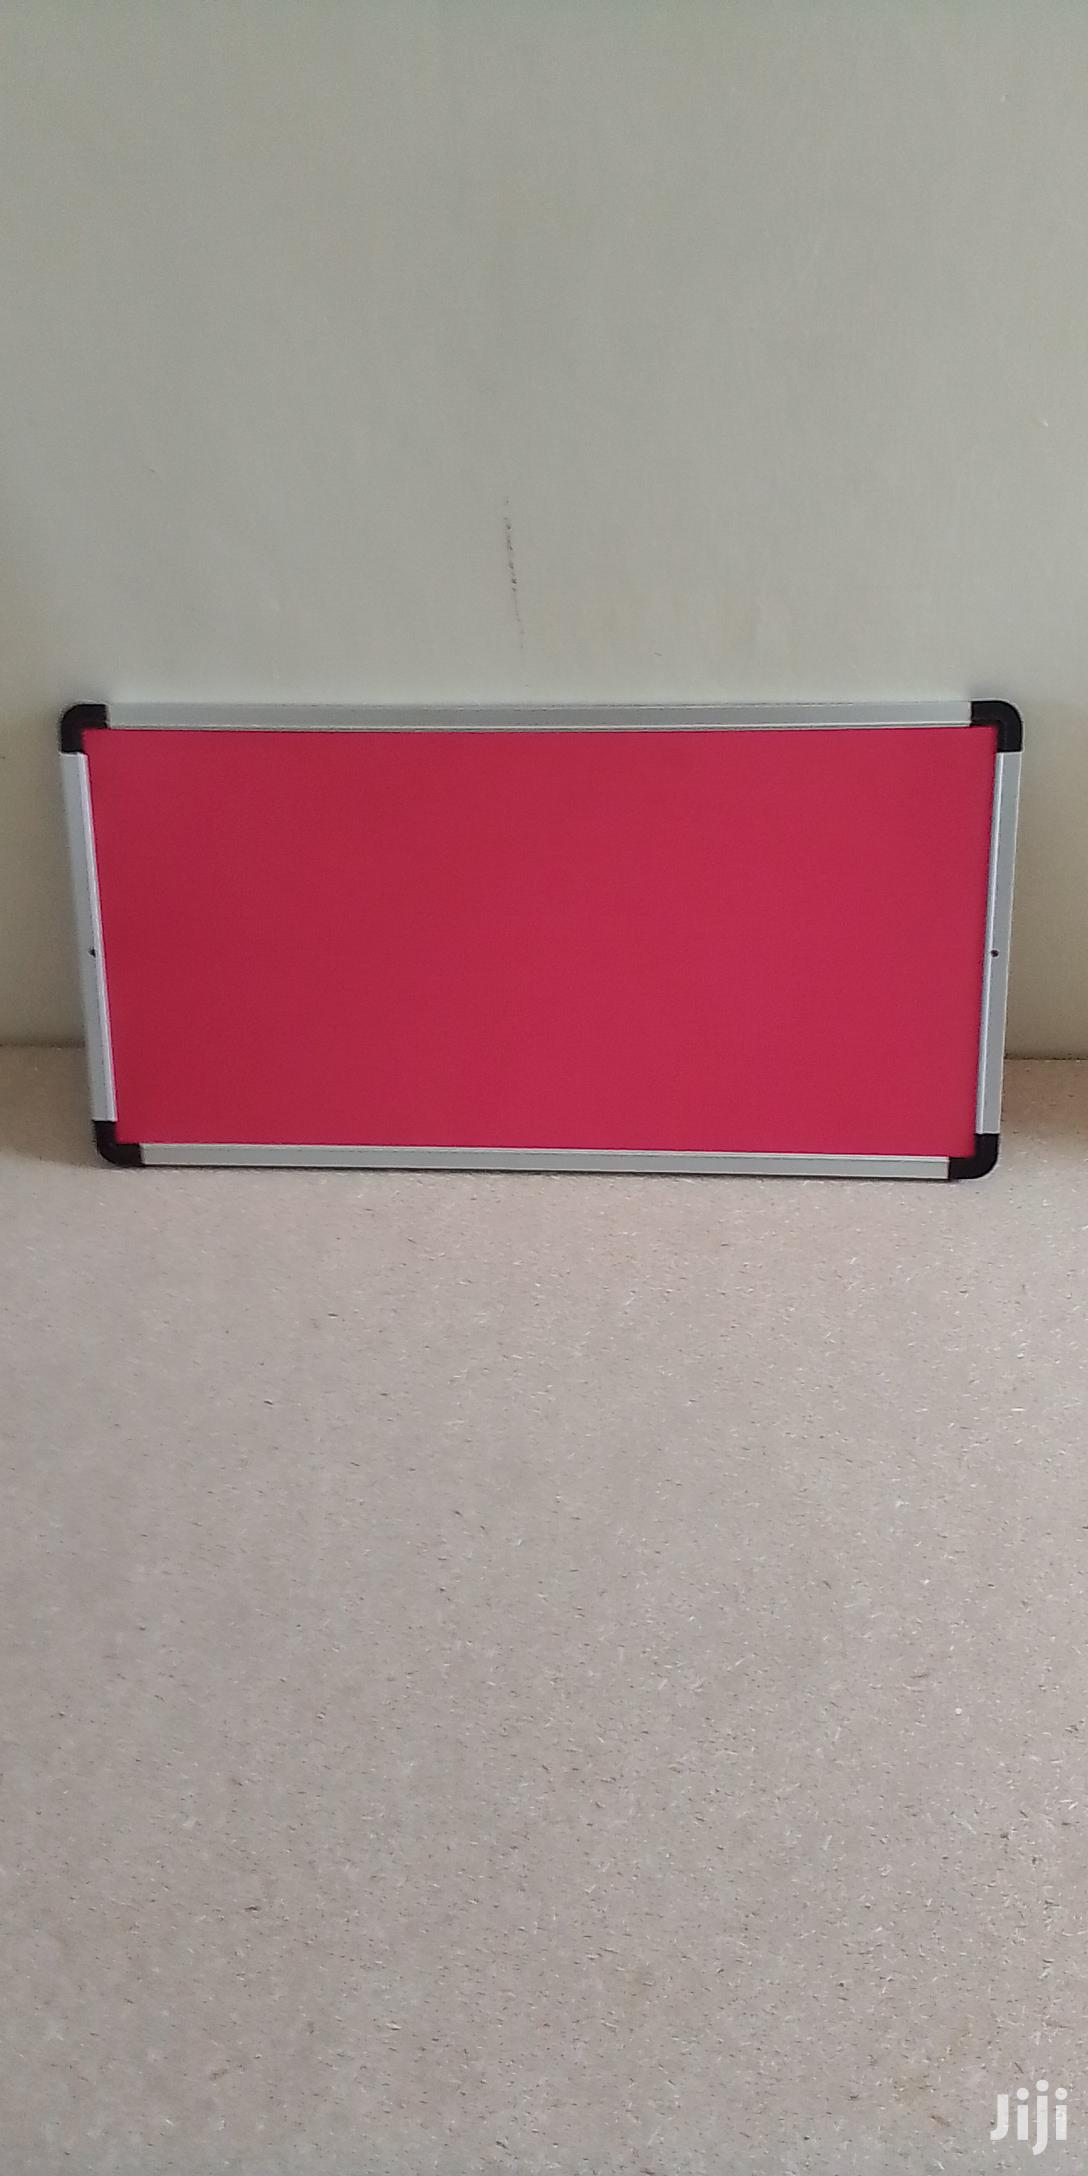 2*1ft Pin Noticeboard(Red Fabric)